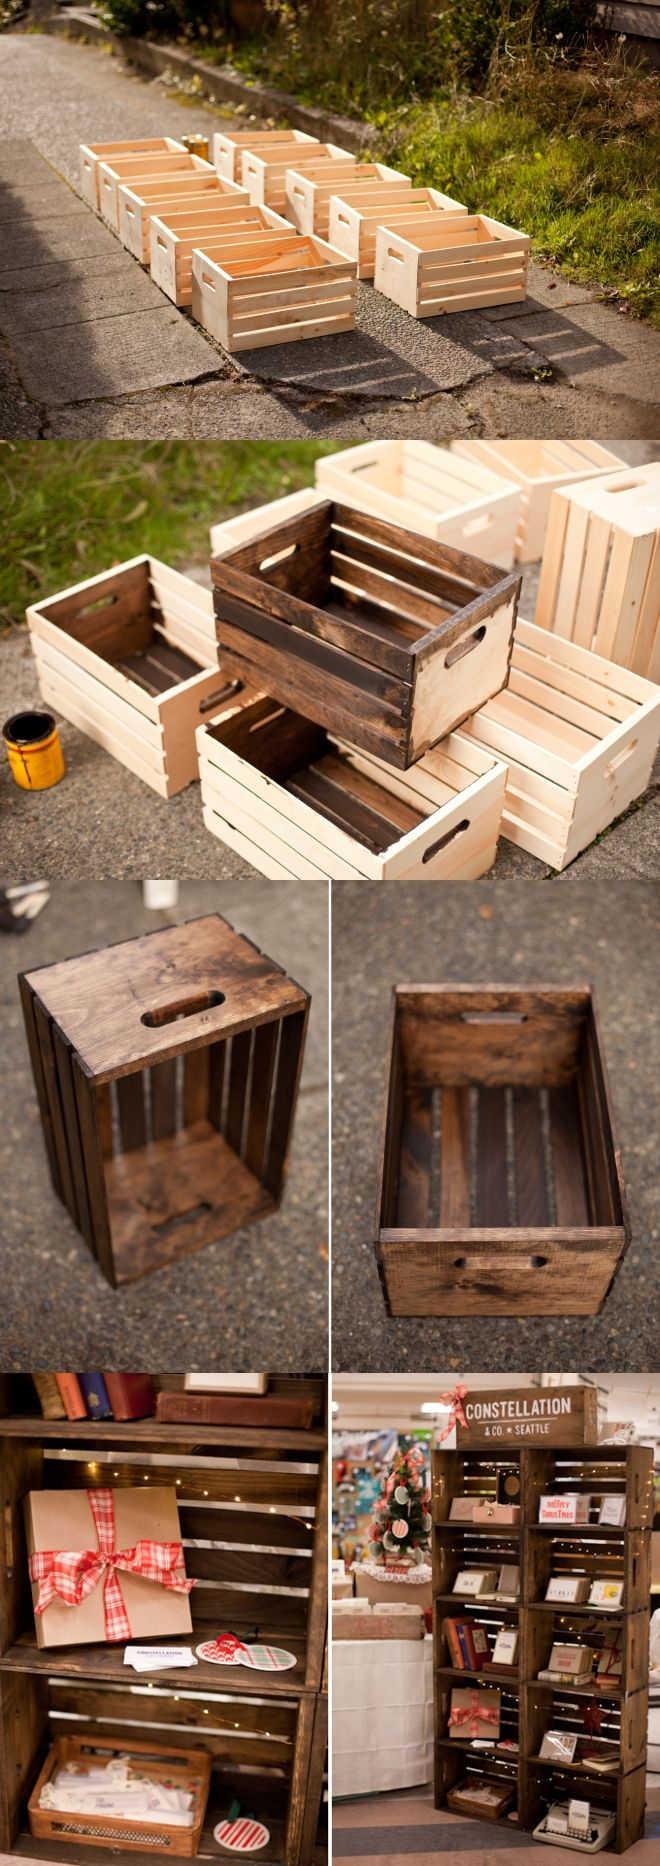 Apple crates=bathroom storage